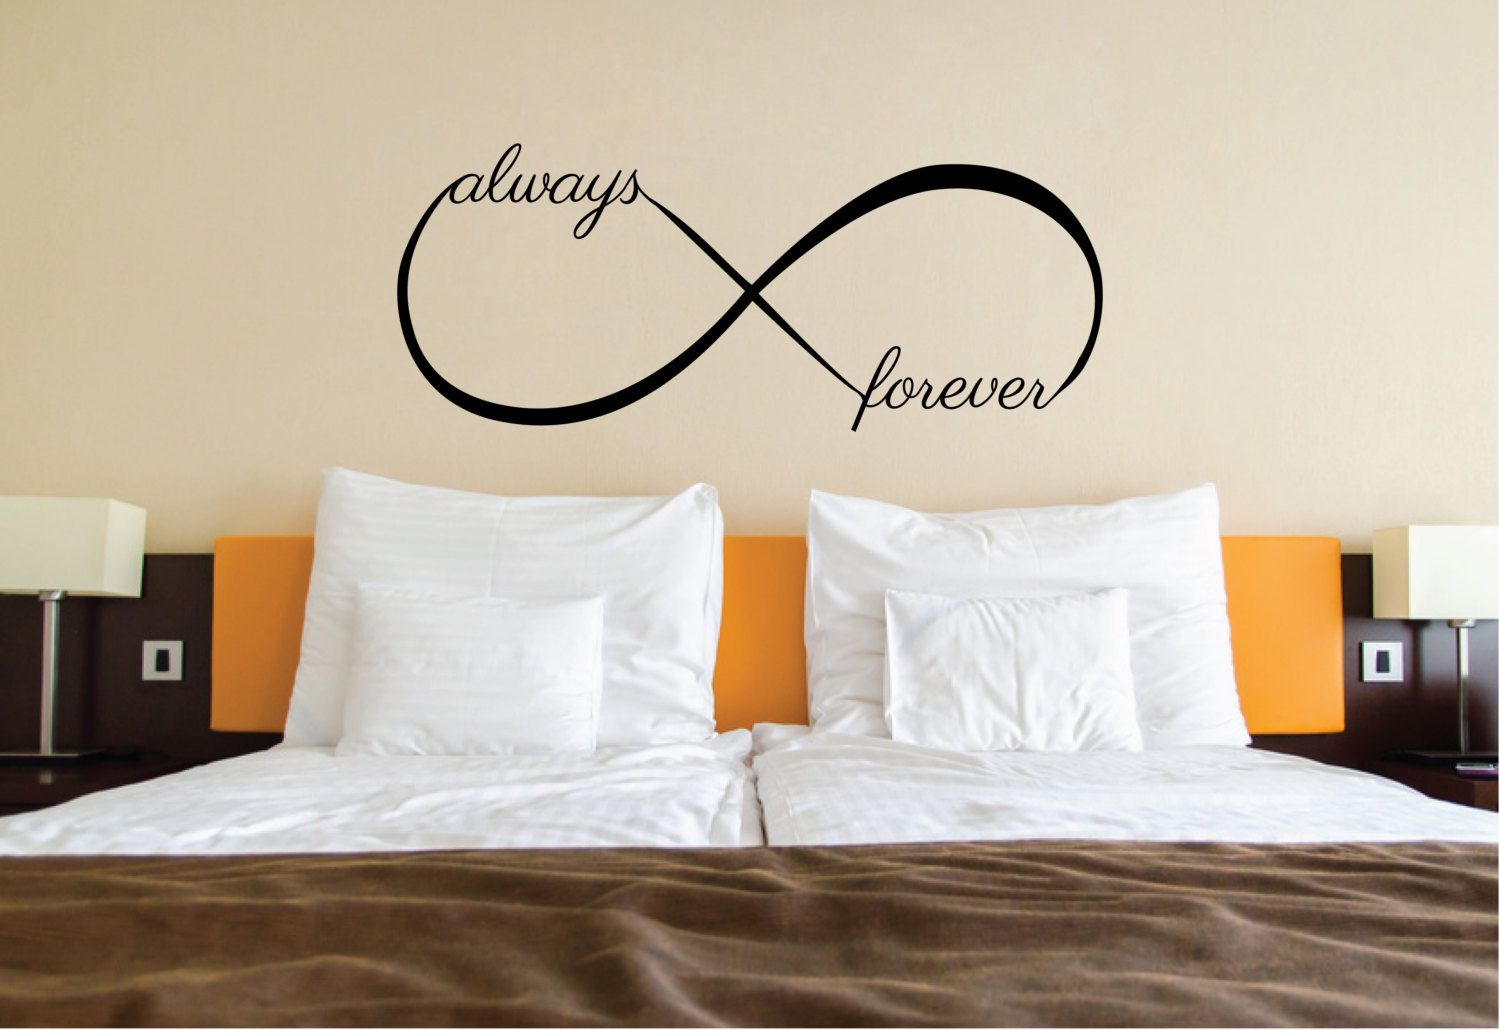 Home bedroom wall design - Bedroom Wall Art Above Bed Mark Cooper Research